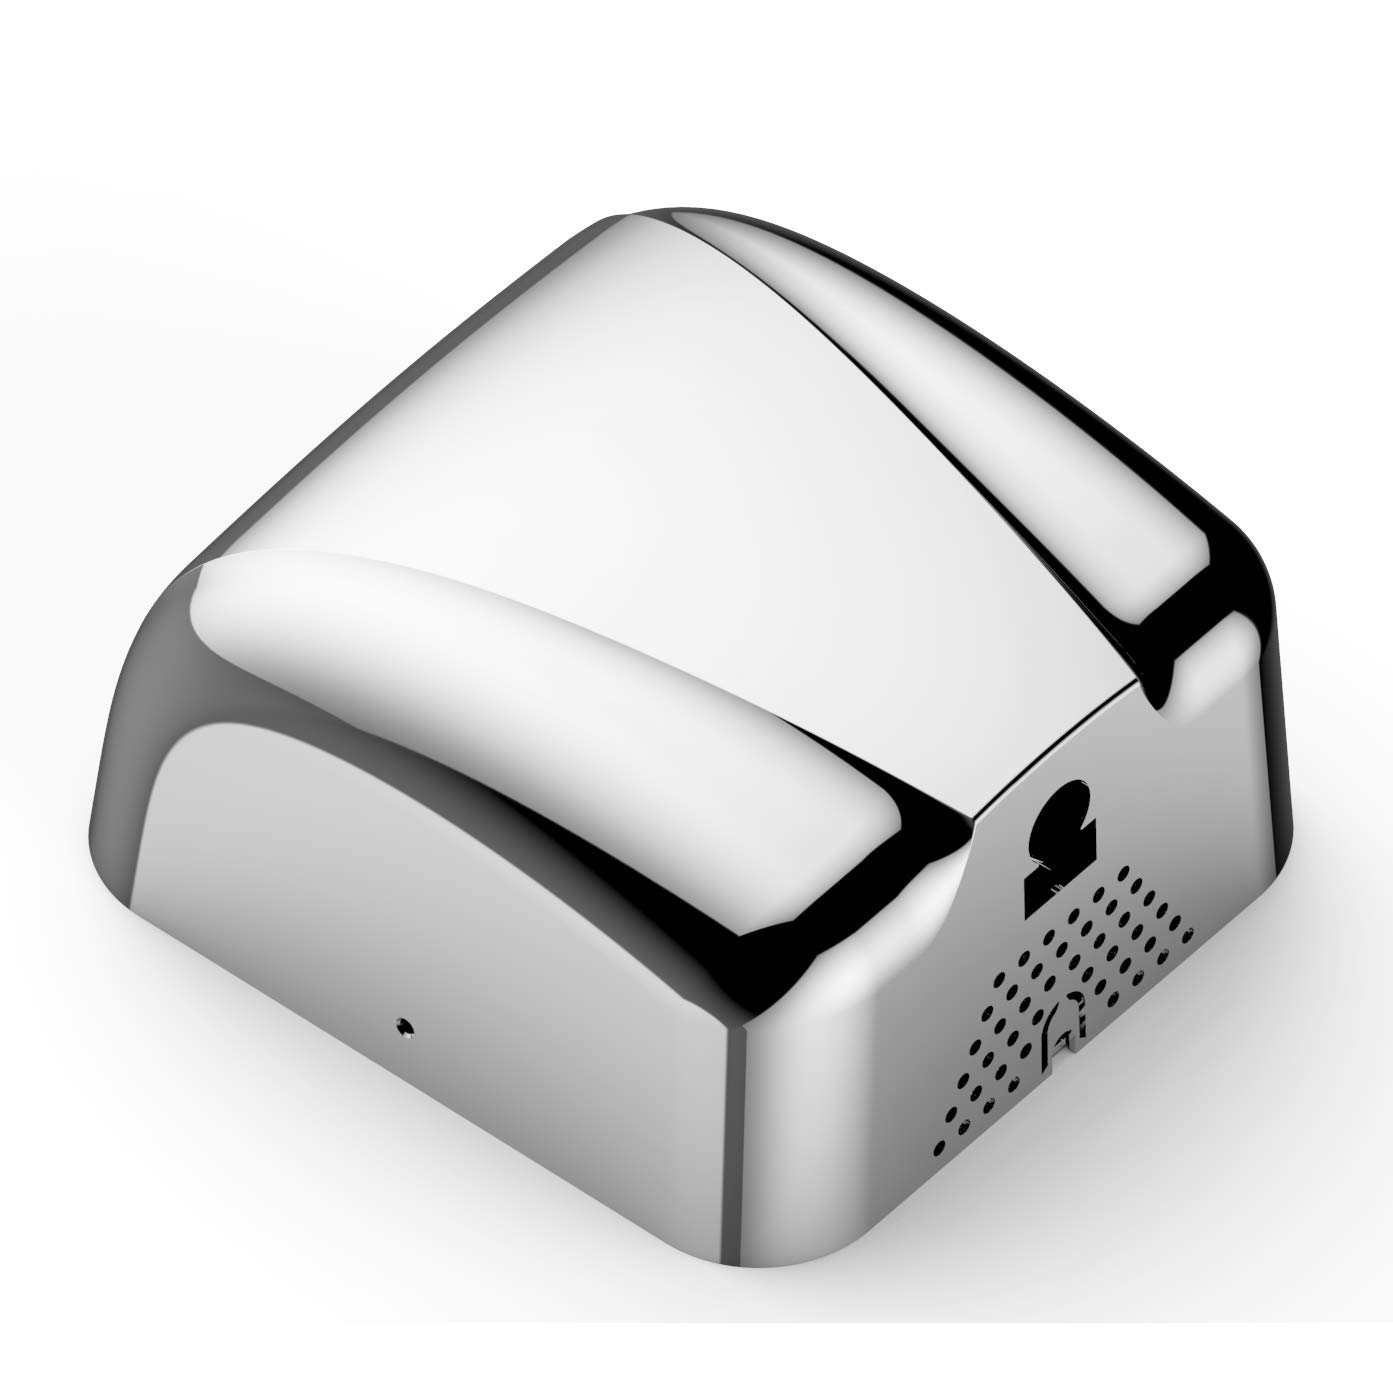 Commercial Bathroom Hand Dryer, Polished Stainless Steel Shell, Powerful 1800W - Dry Hands in 10s, Low Noise 70 dB, Set of 1 Commercial Hand Dryer